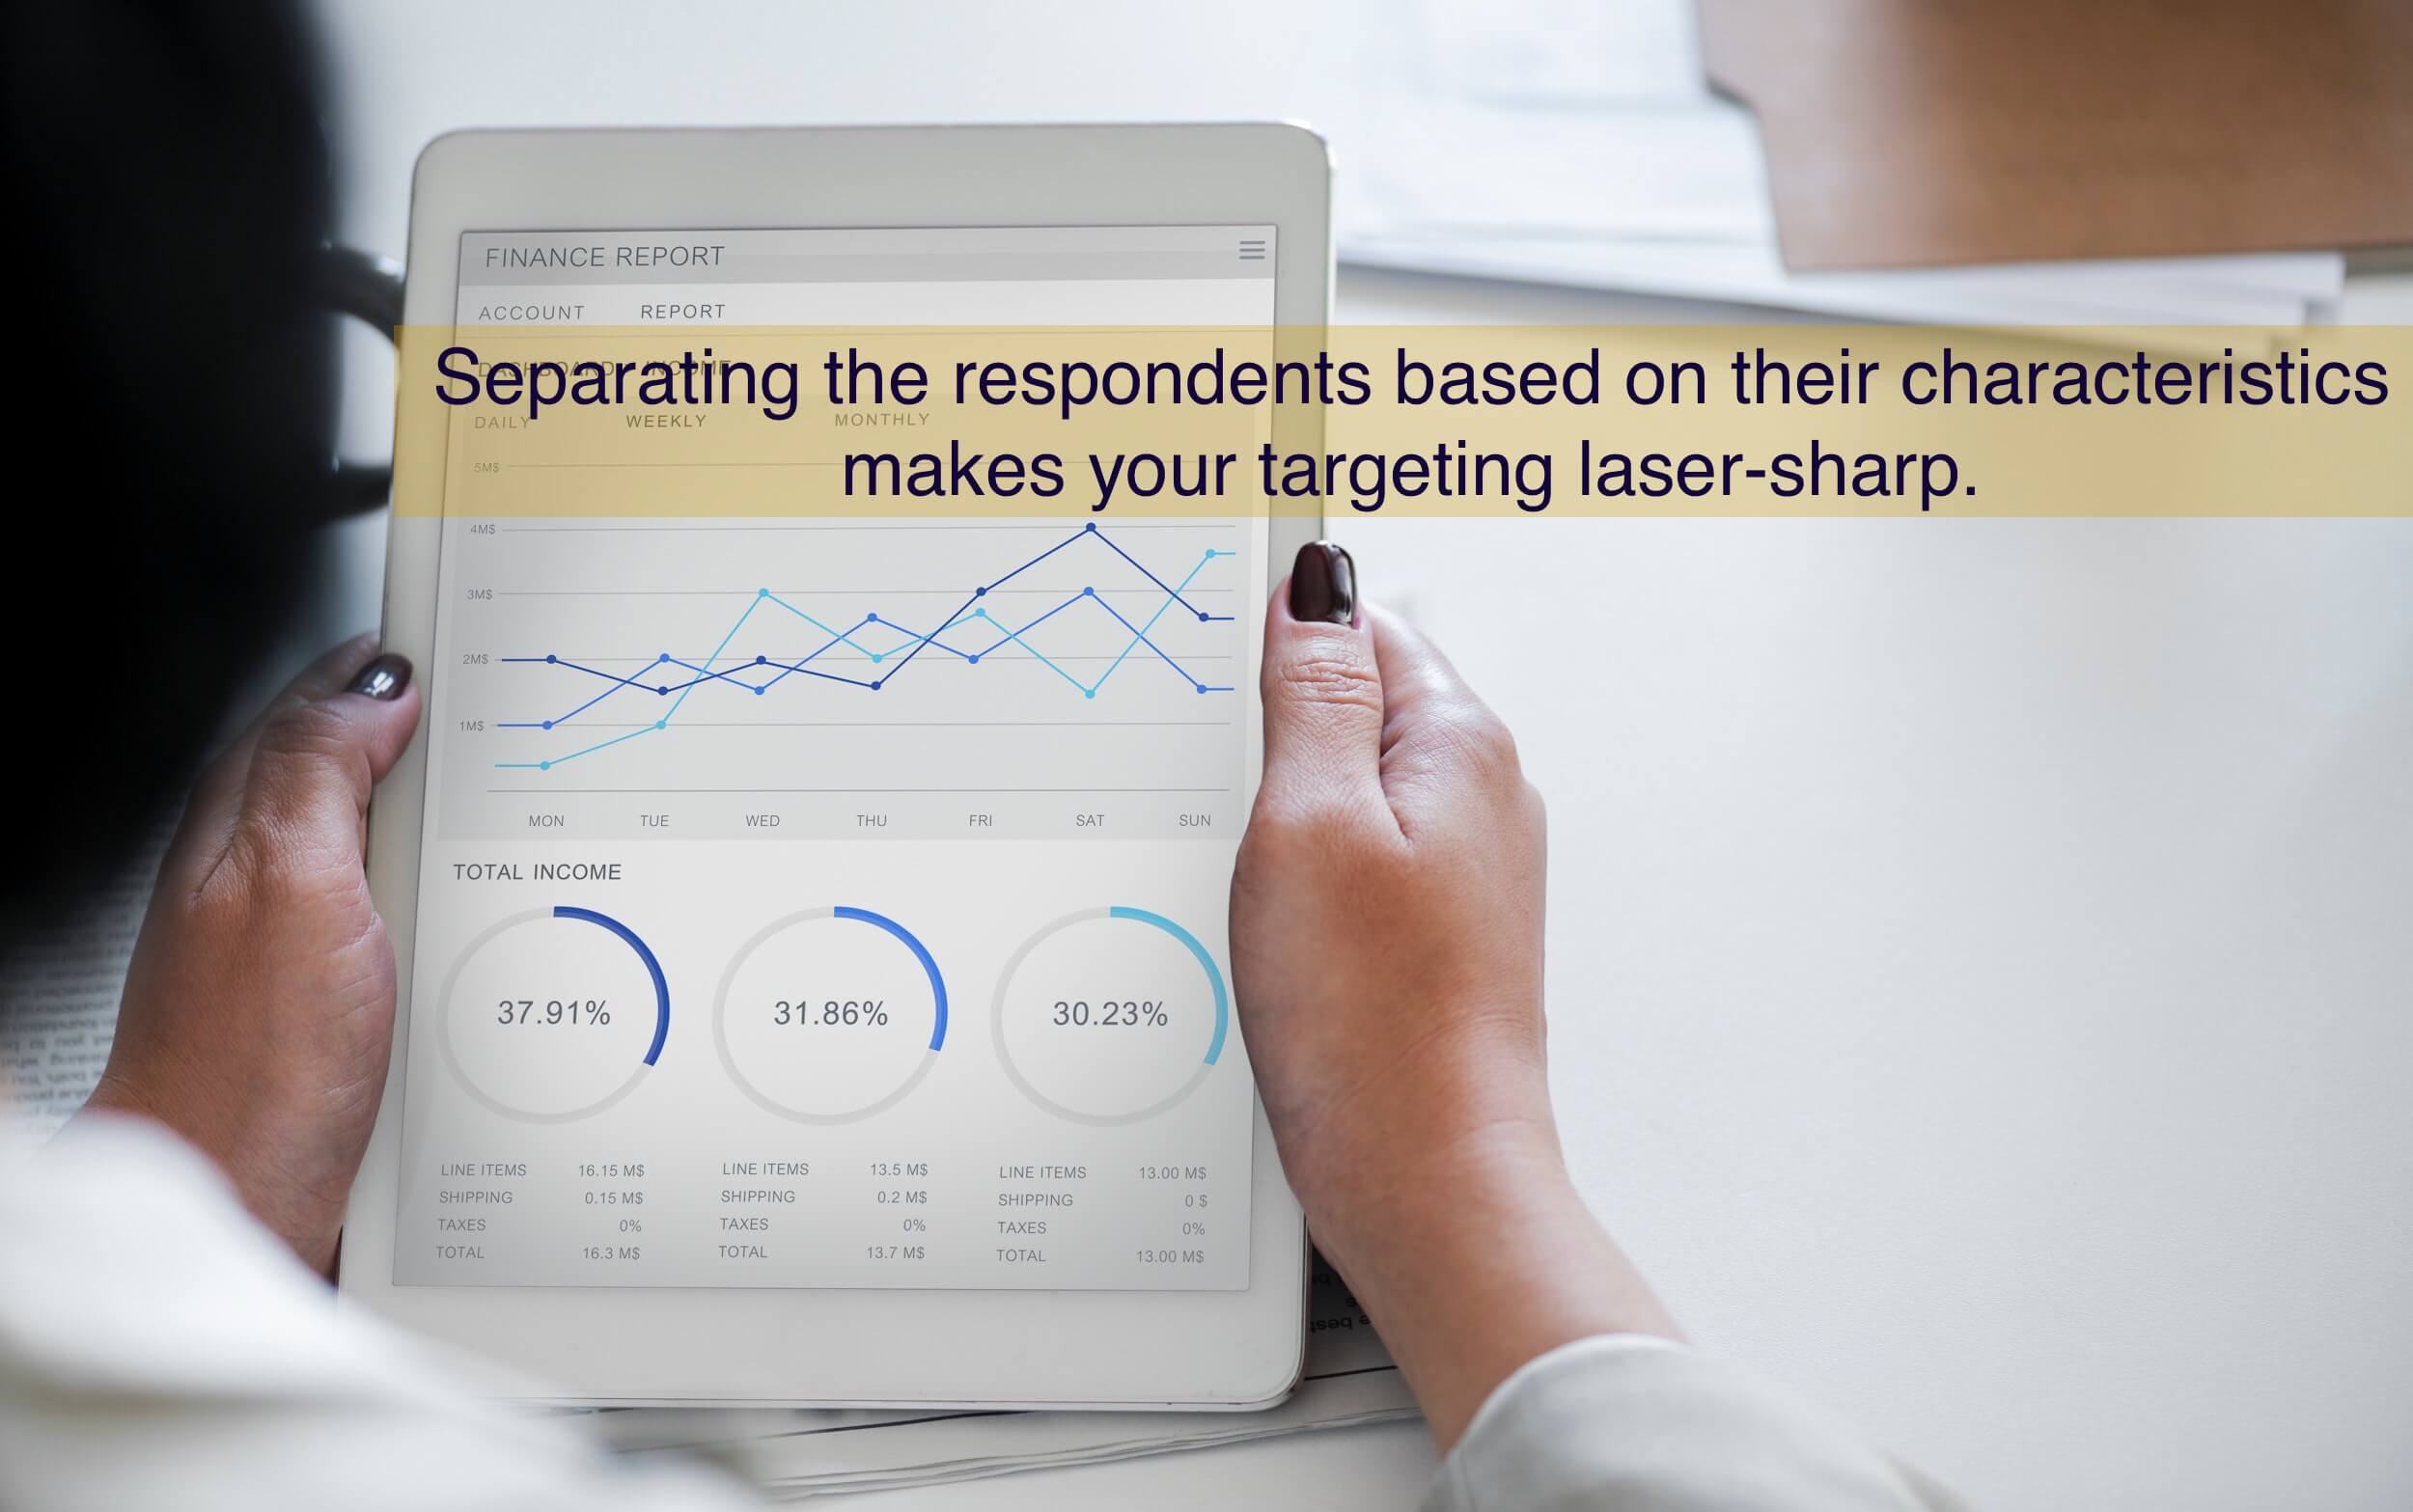 Separating the respondents based on their characteristics makes your targeting laser-sharp.